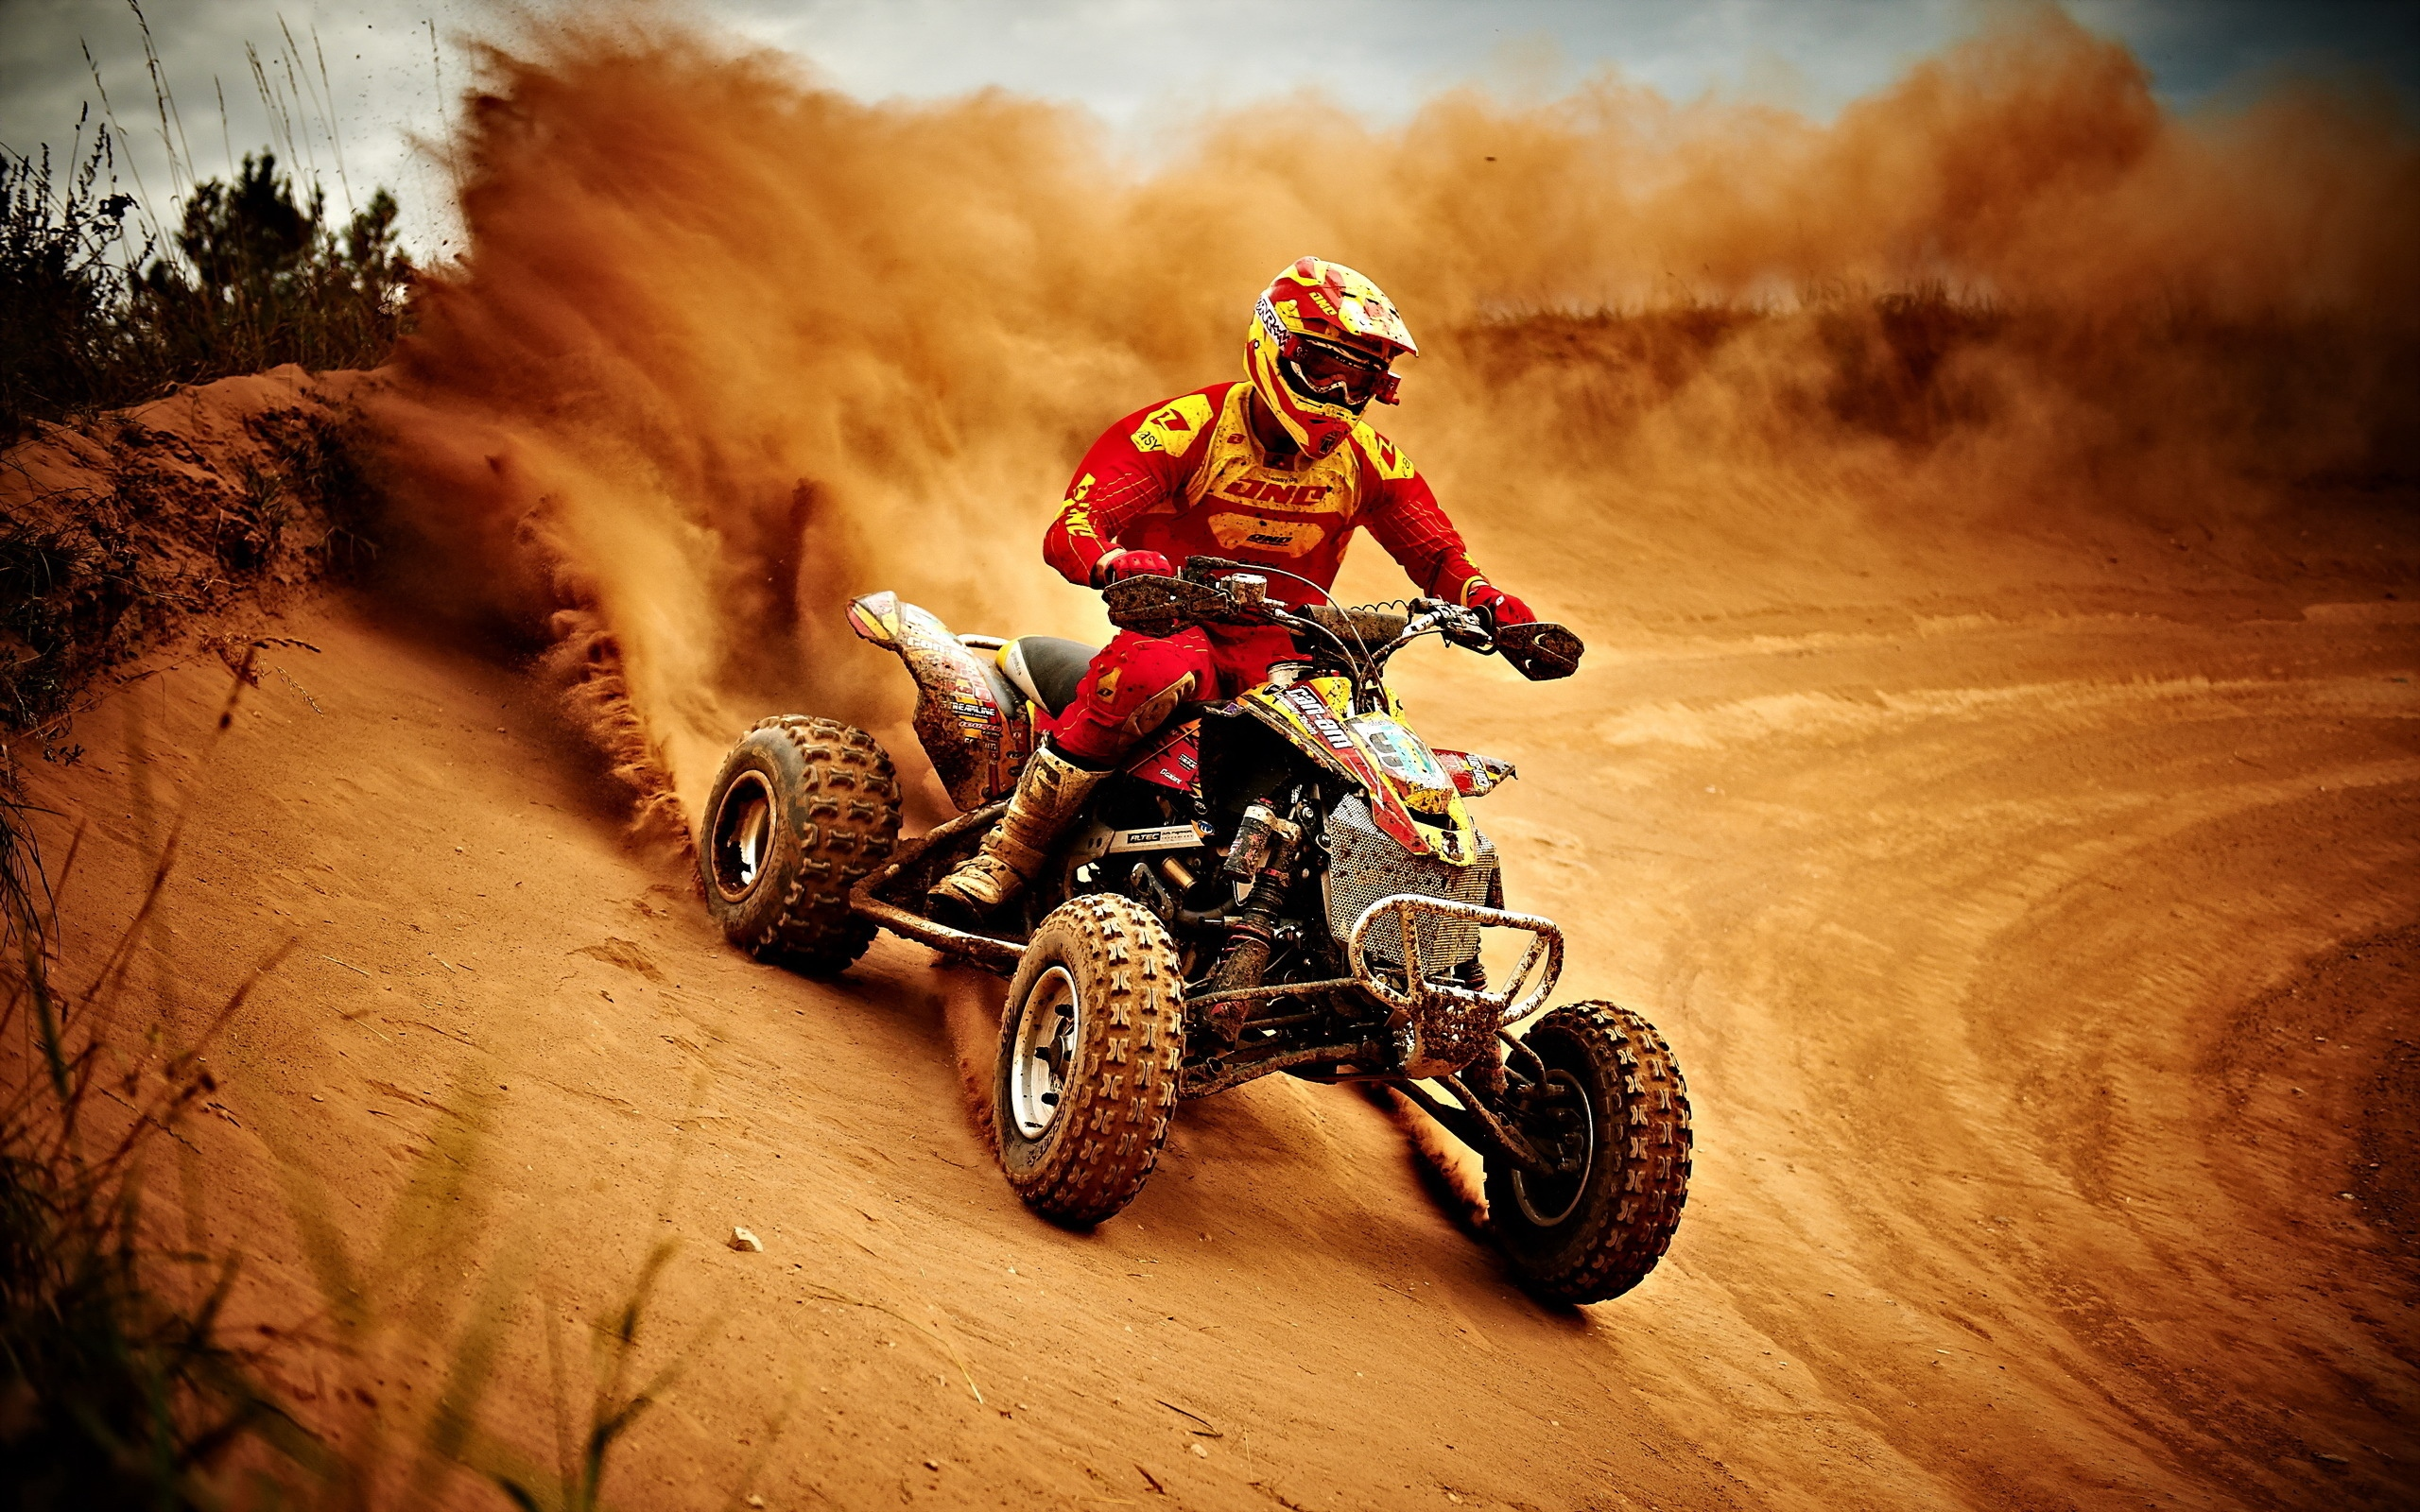 race motorcycle sports